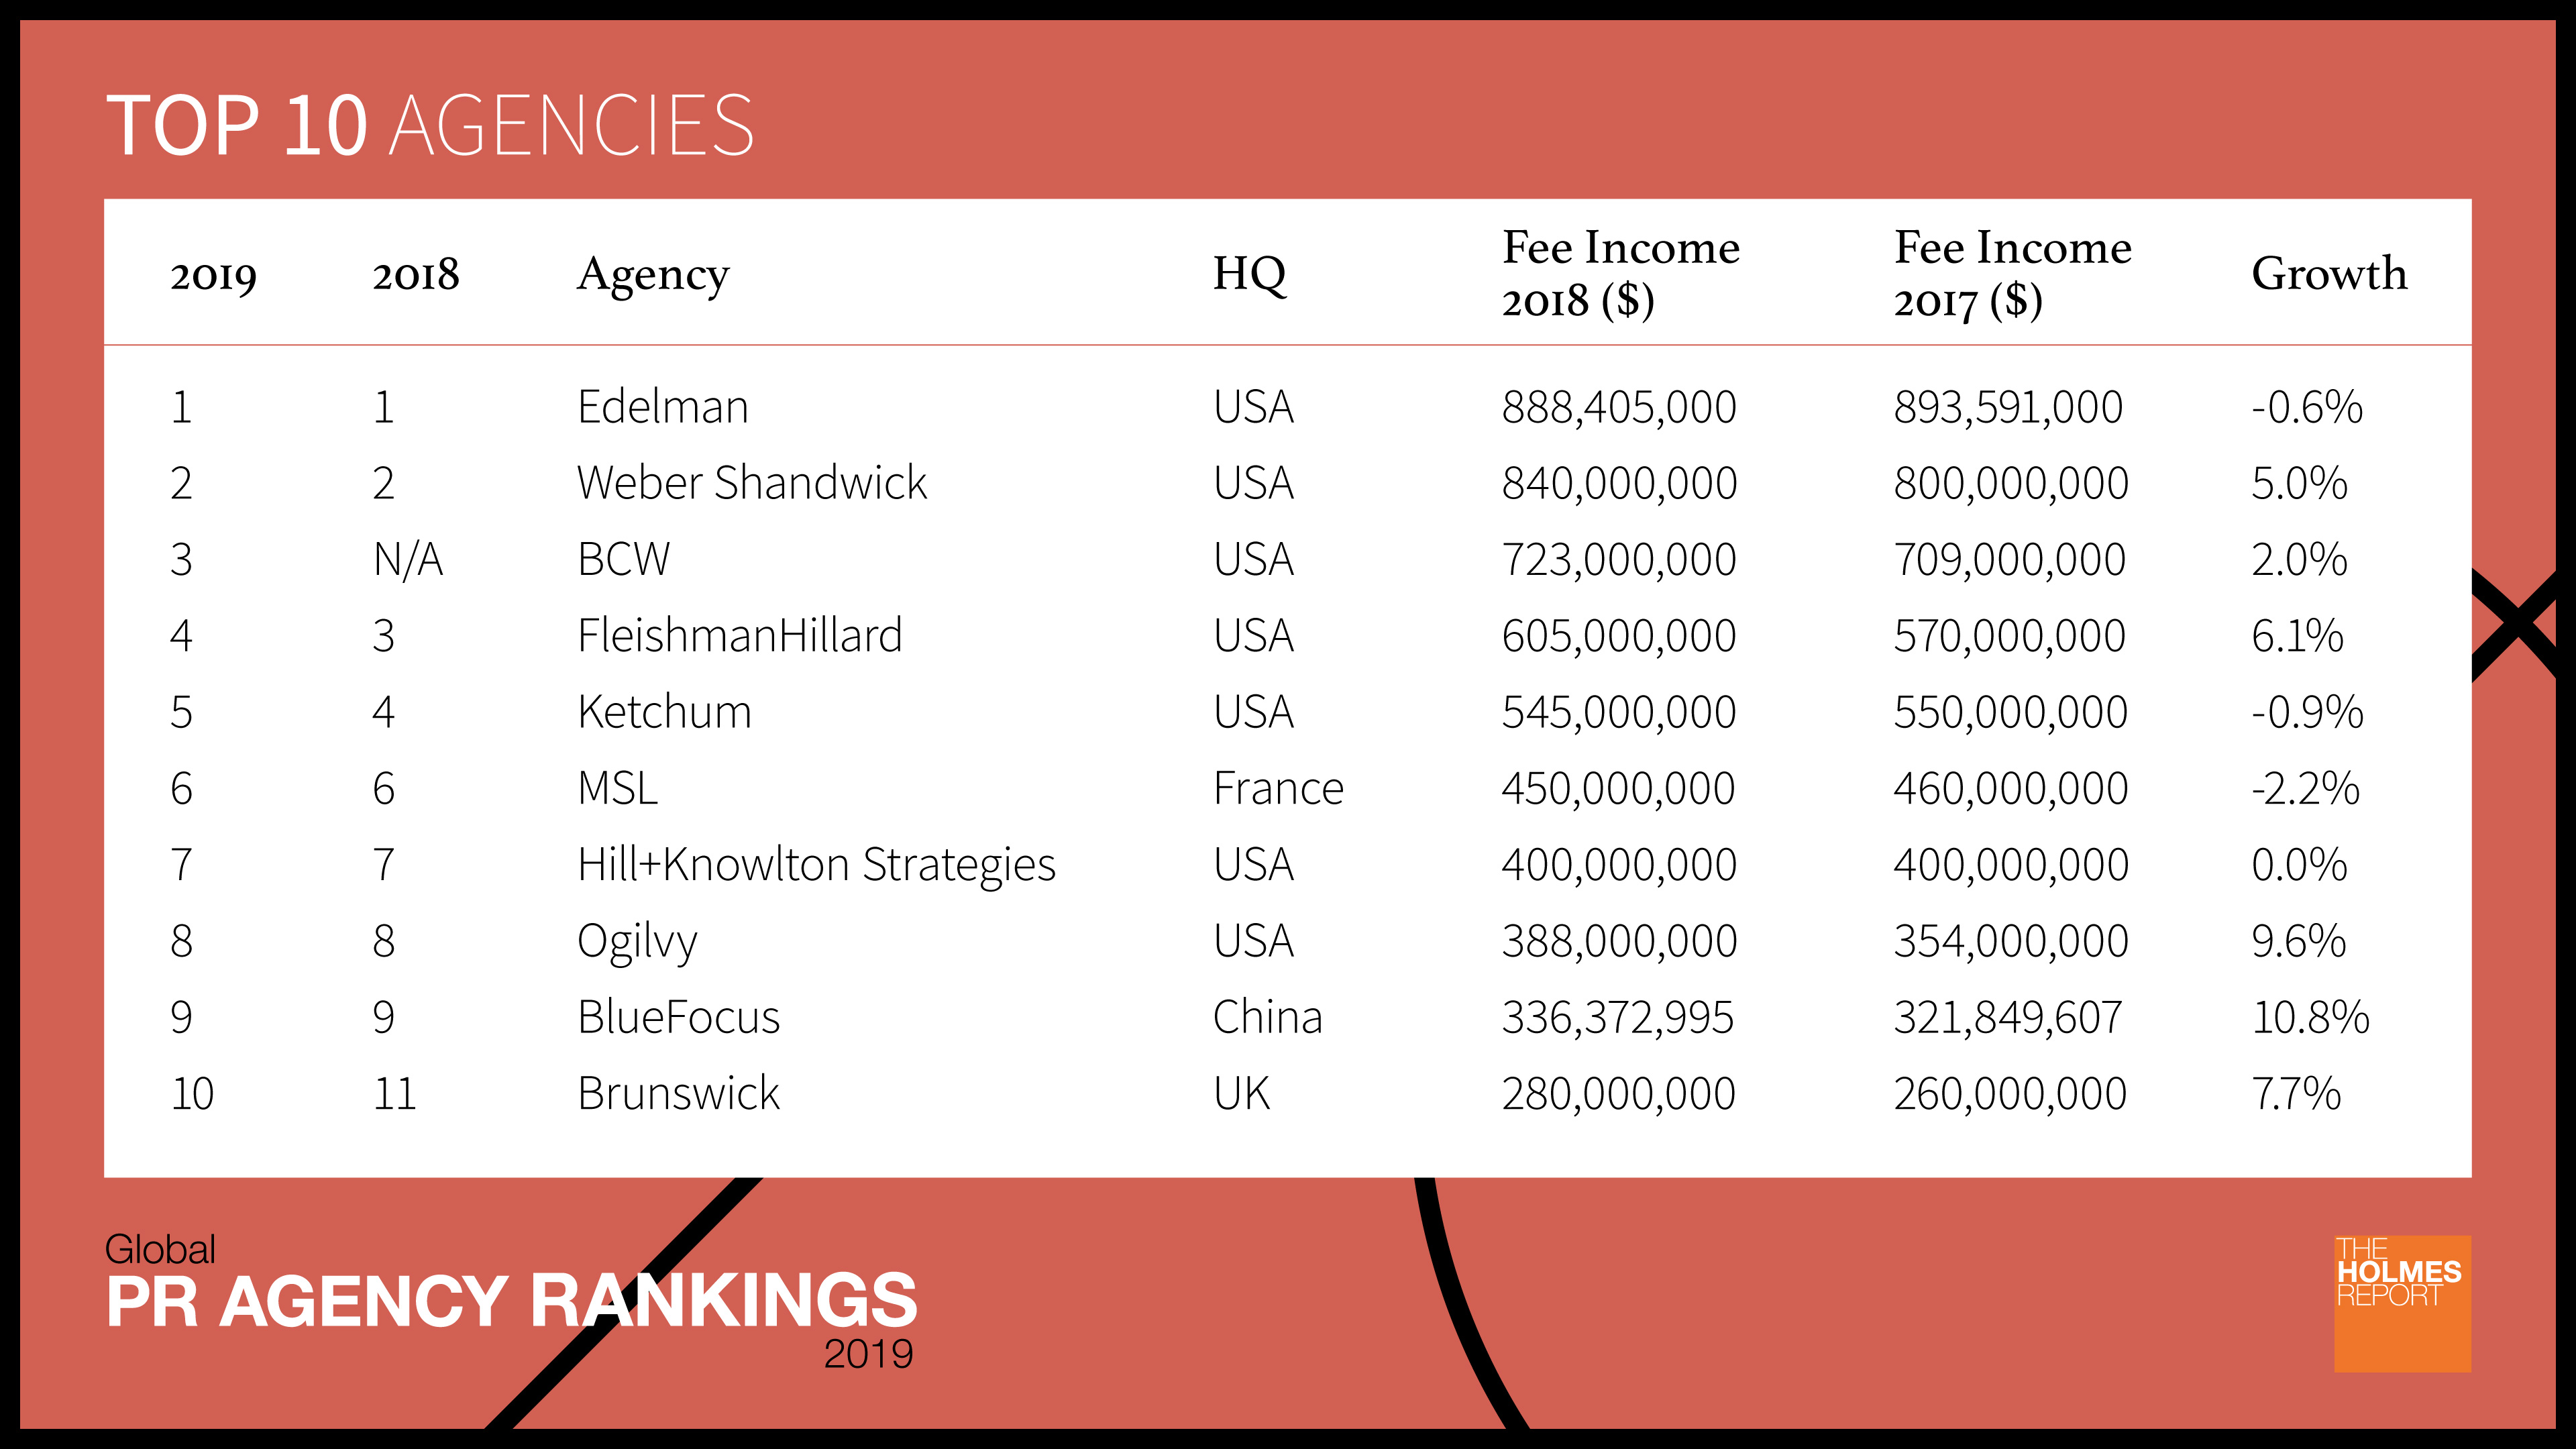 2019 Global PR Agency Rankings: Top 10